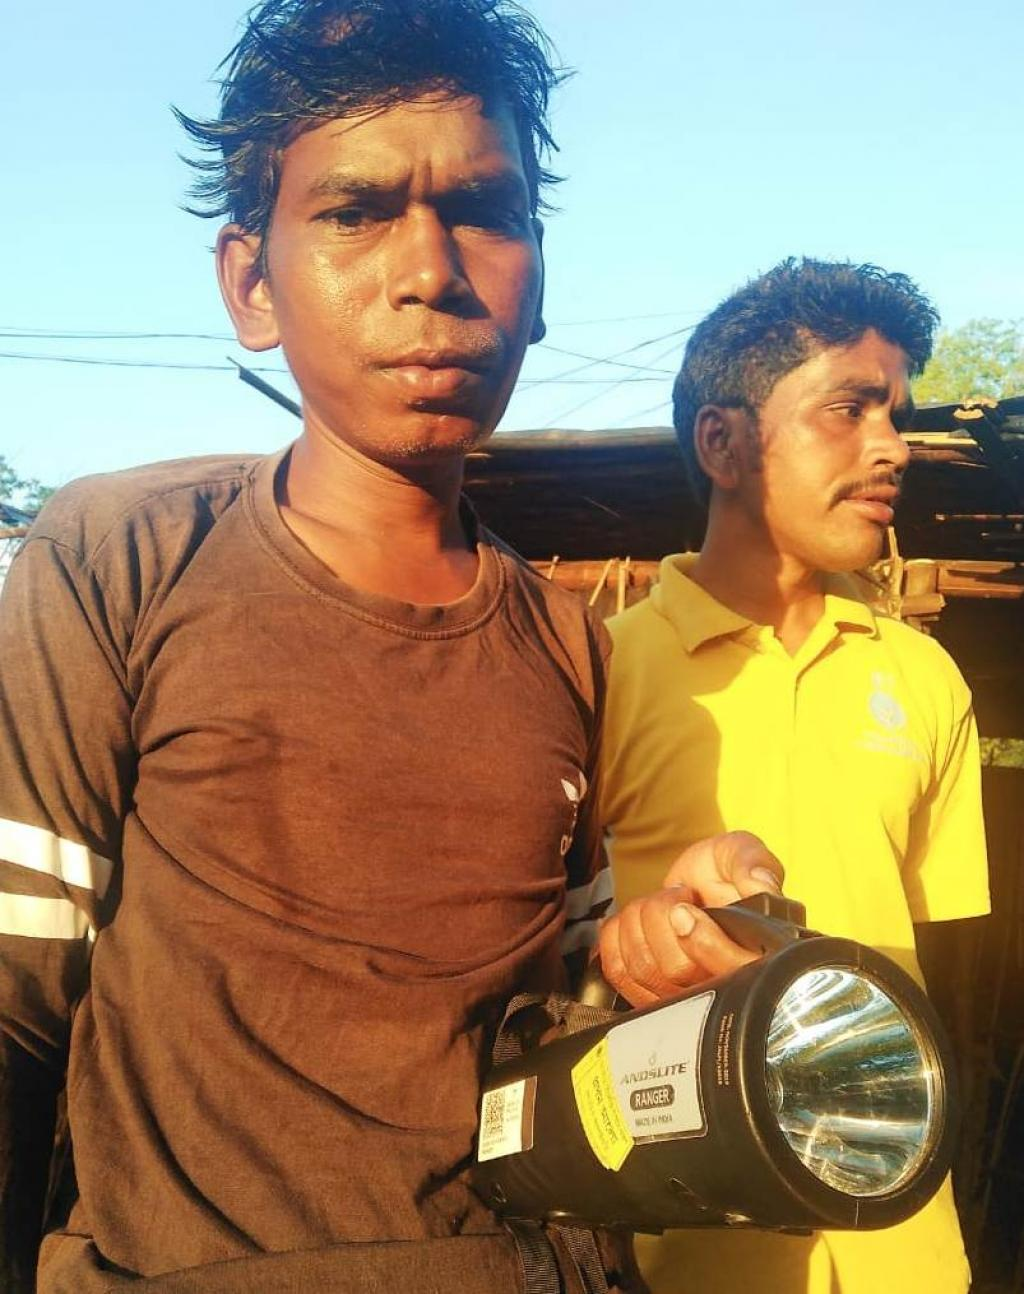 A member of Asur tribe bought a light to protect himself from elephants. Photo: Atonu Choudhary